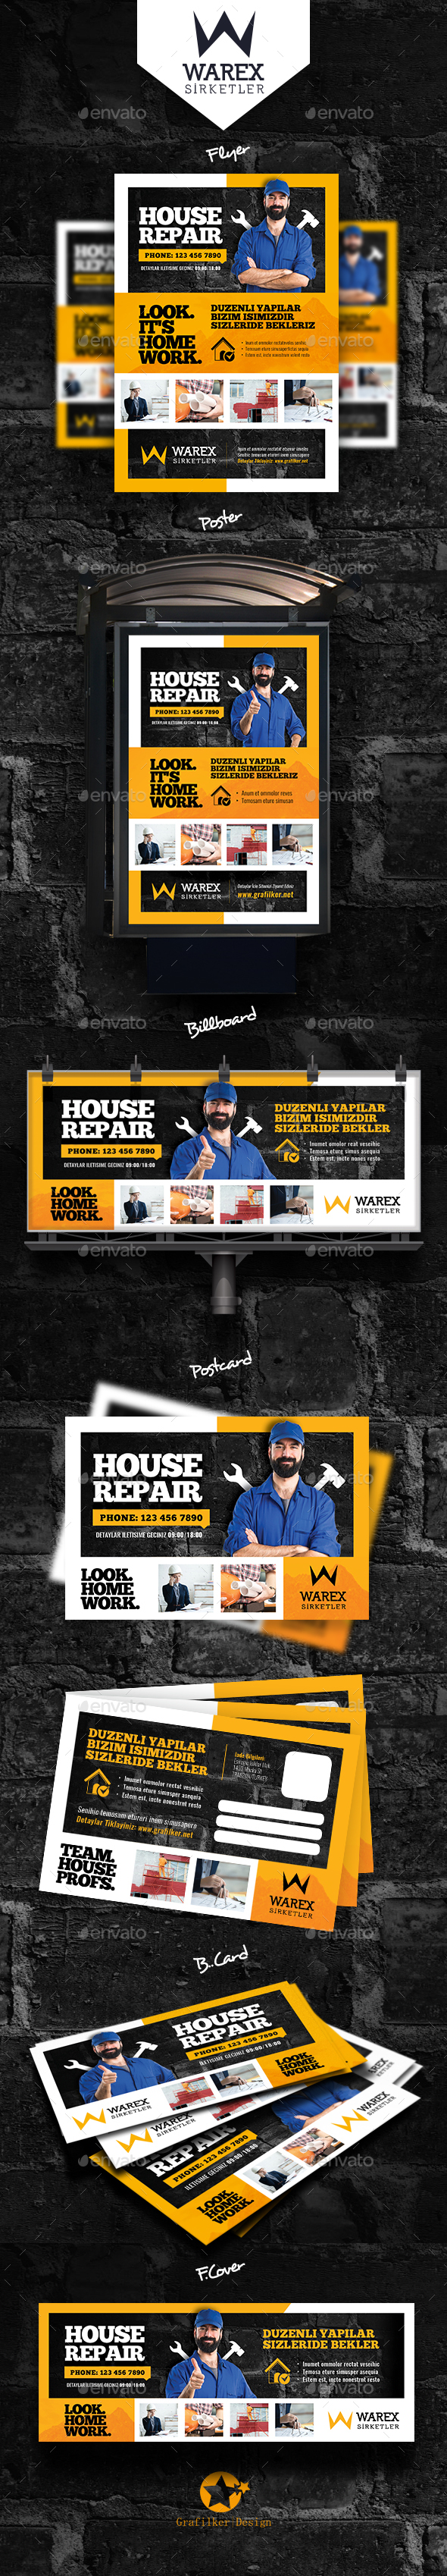 House Repair Bundle Templates - Corporate Flyers